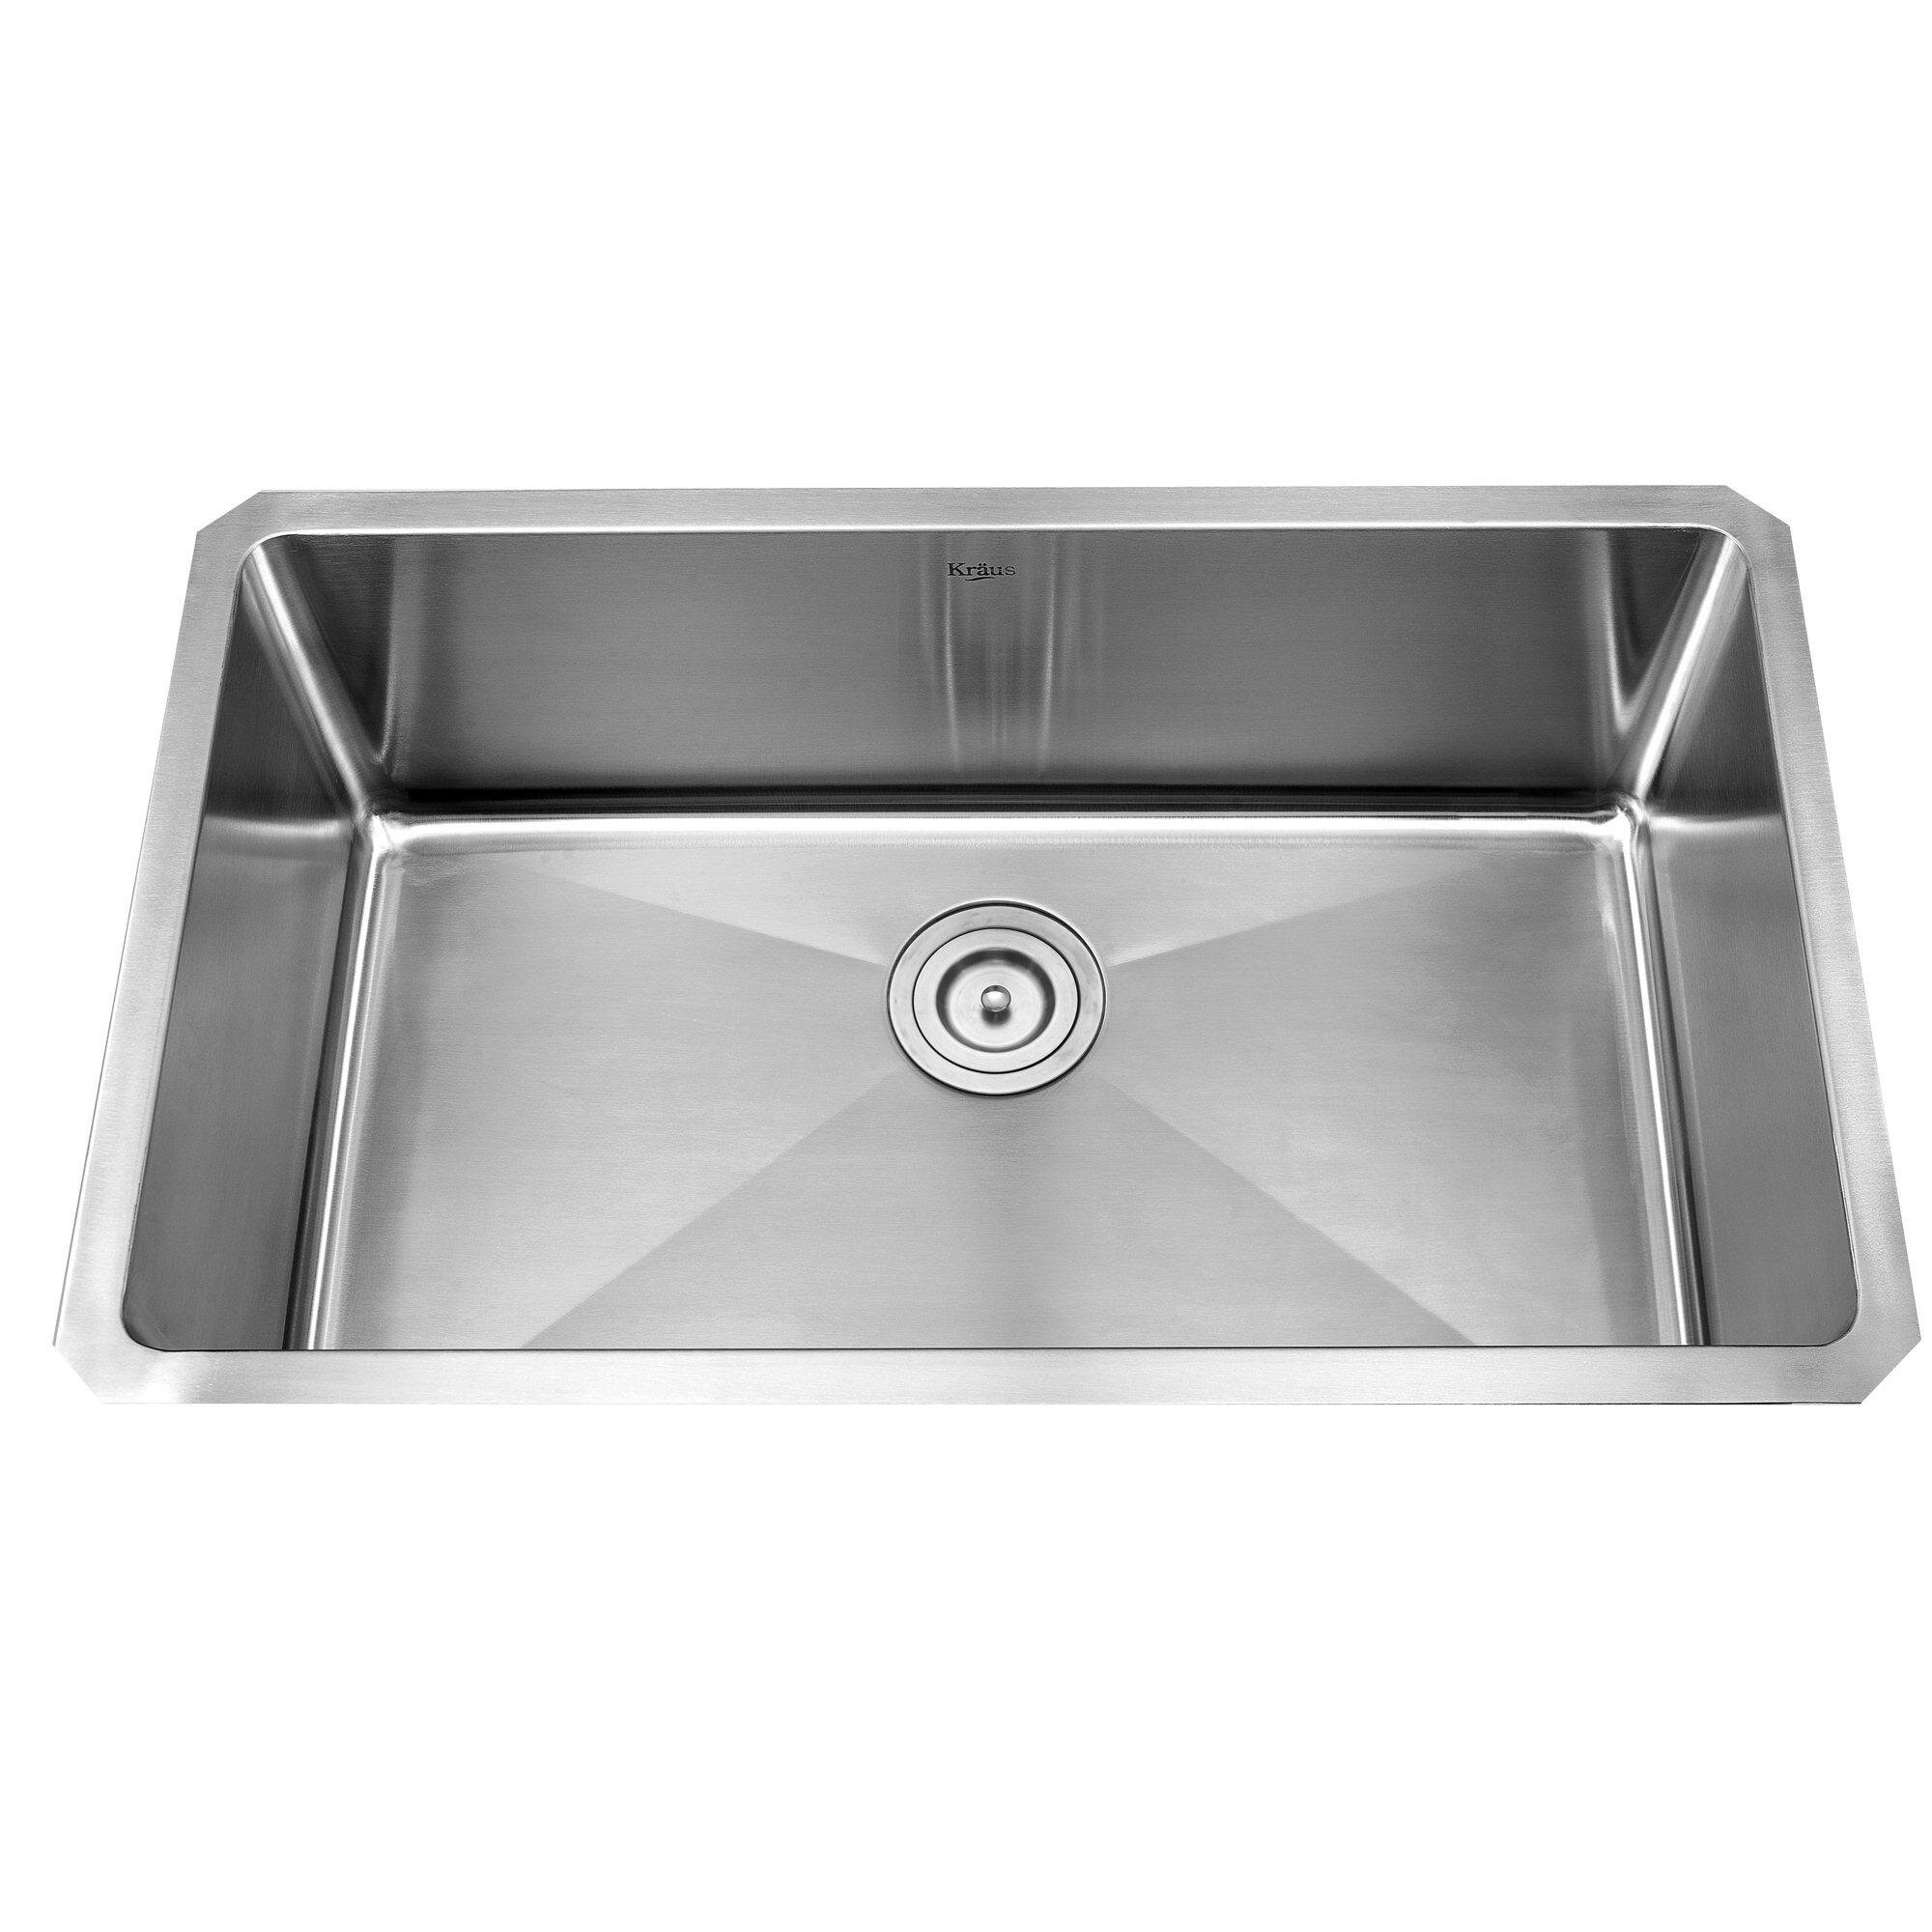 White Kitchen Sink Undermount Kraus Stainless Steel 30 X 16 Undermount Kitchen Sink With